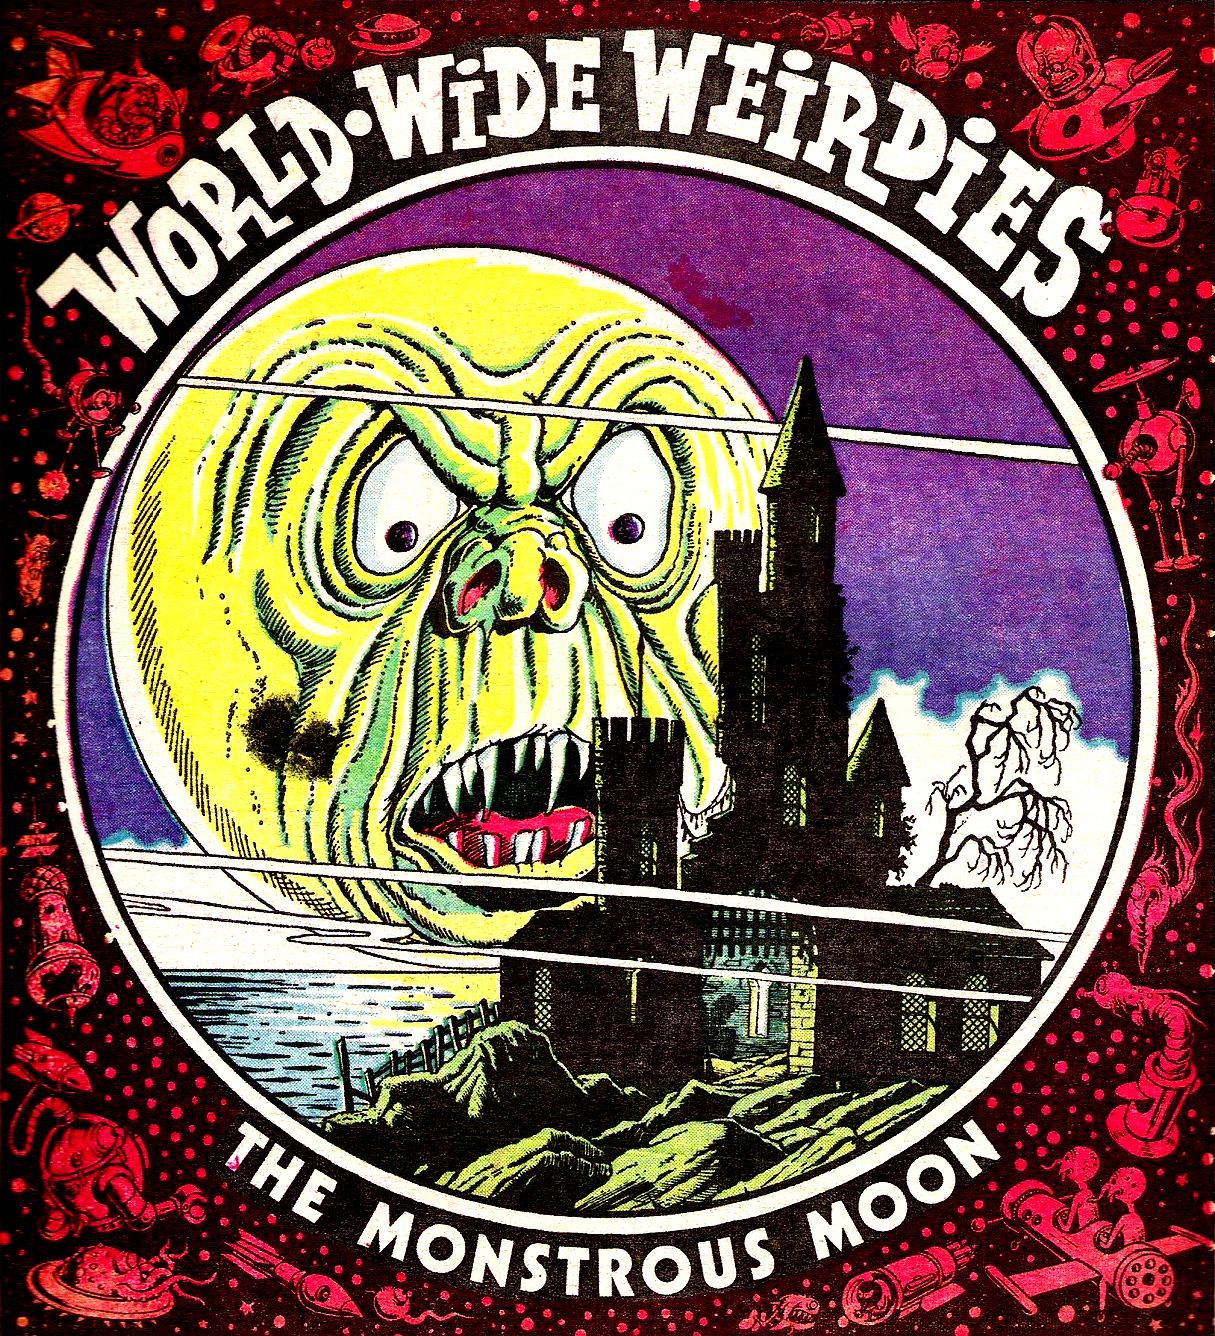 Ken Reid - World Wide Weirdies 21